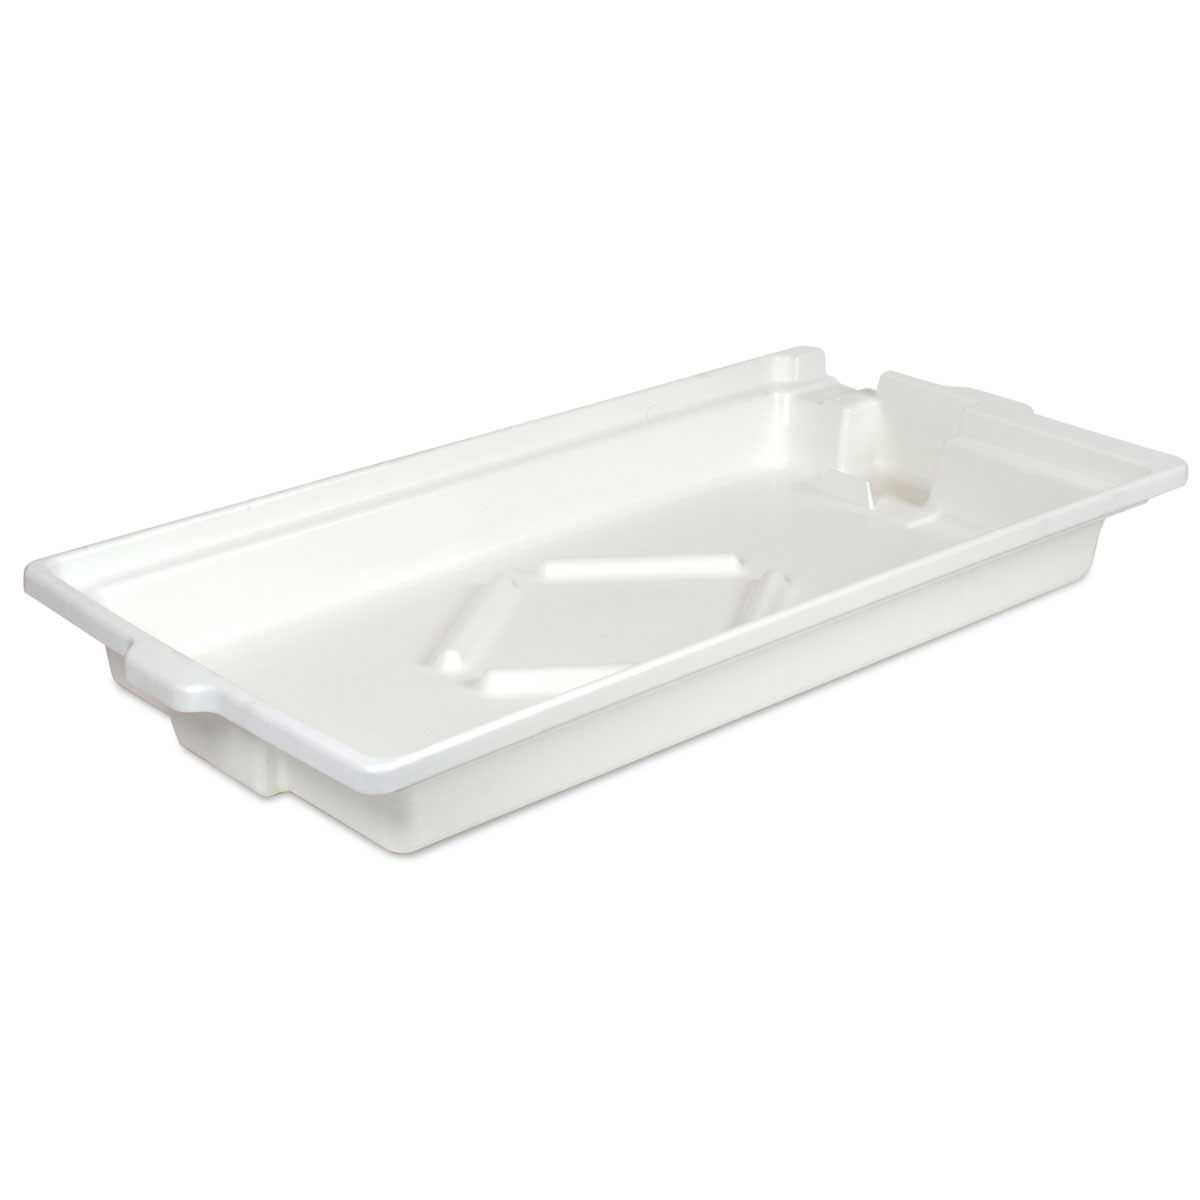 Water Pan for MK-101PRO 24 and MK-1070 tile saws